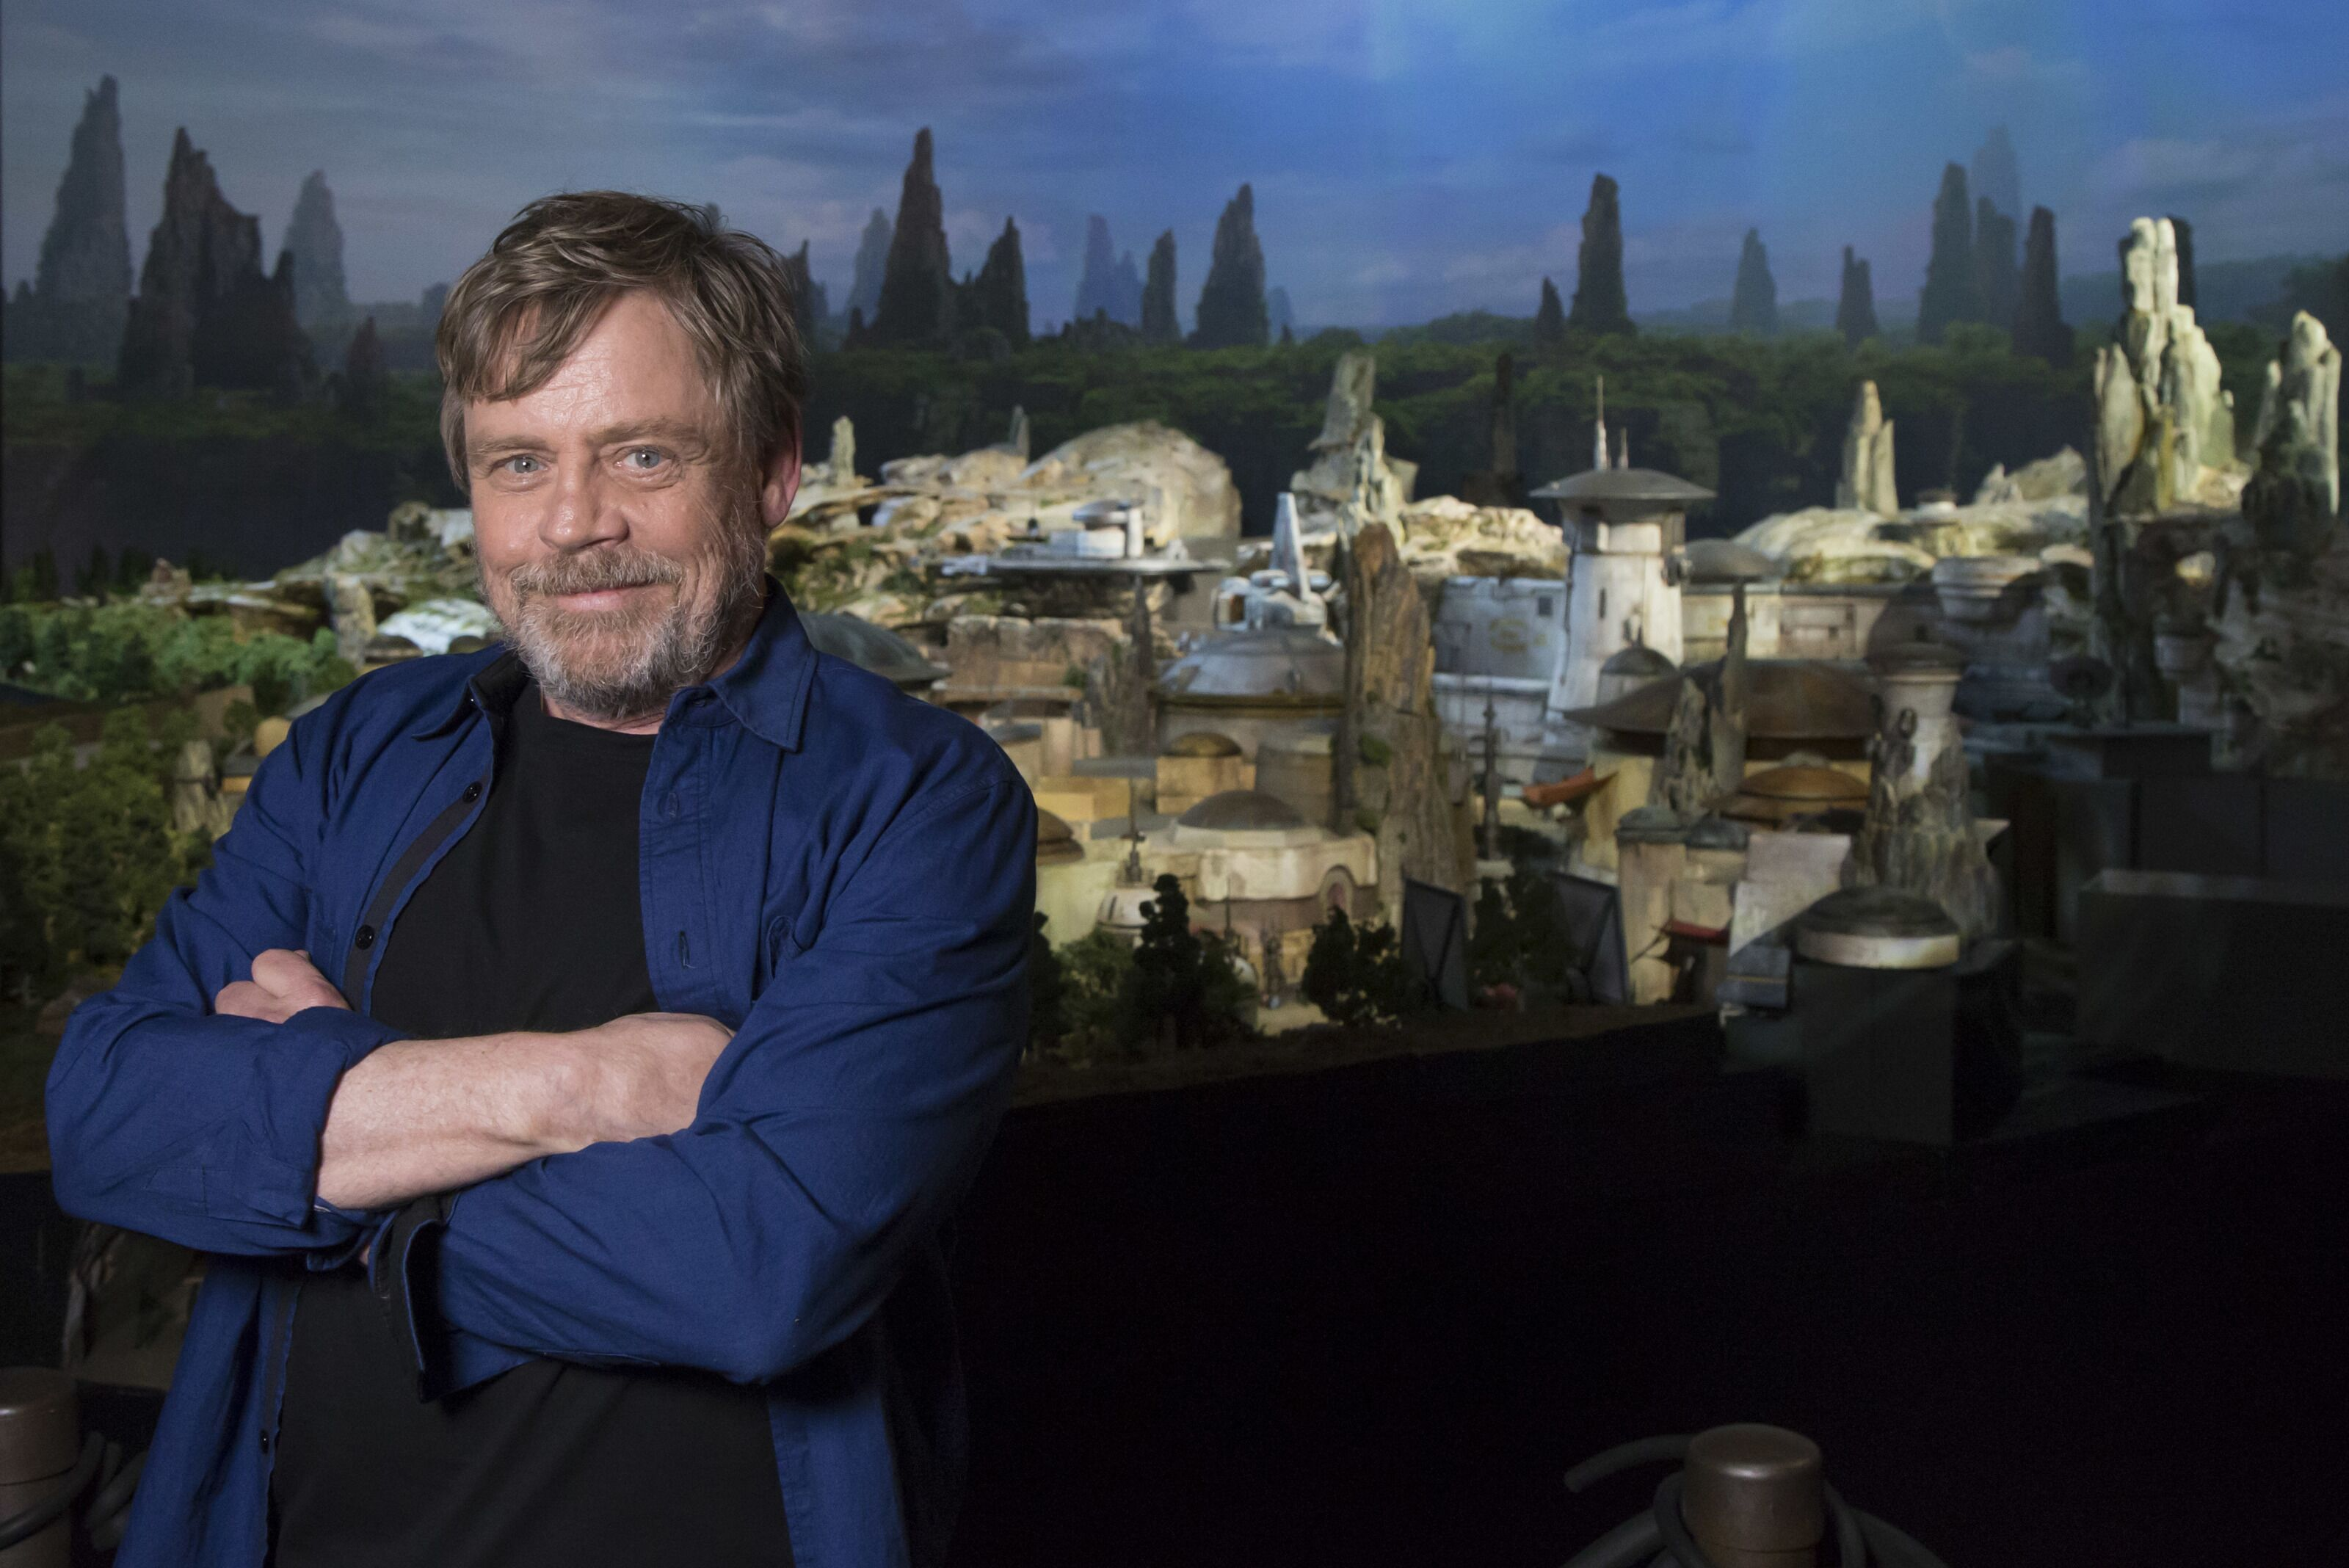 Star Wars: Mark Hamill pays tribute to Carrie Fisher and Peter Mayhew in emotional Tweet